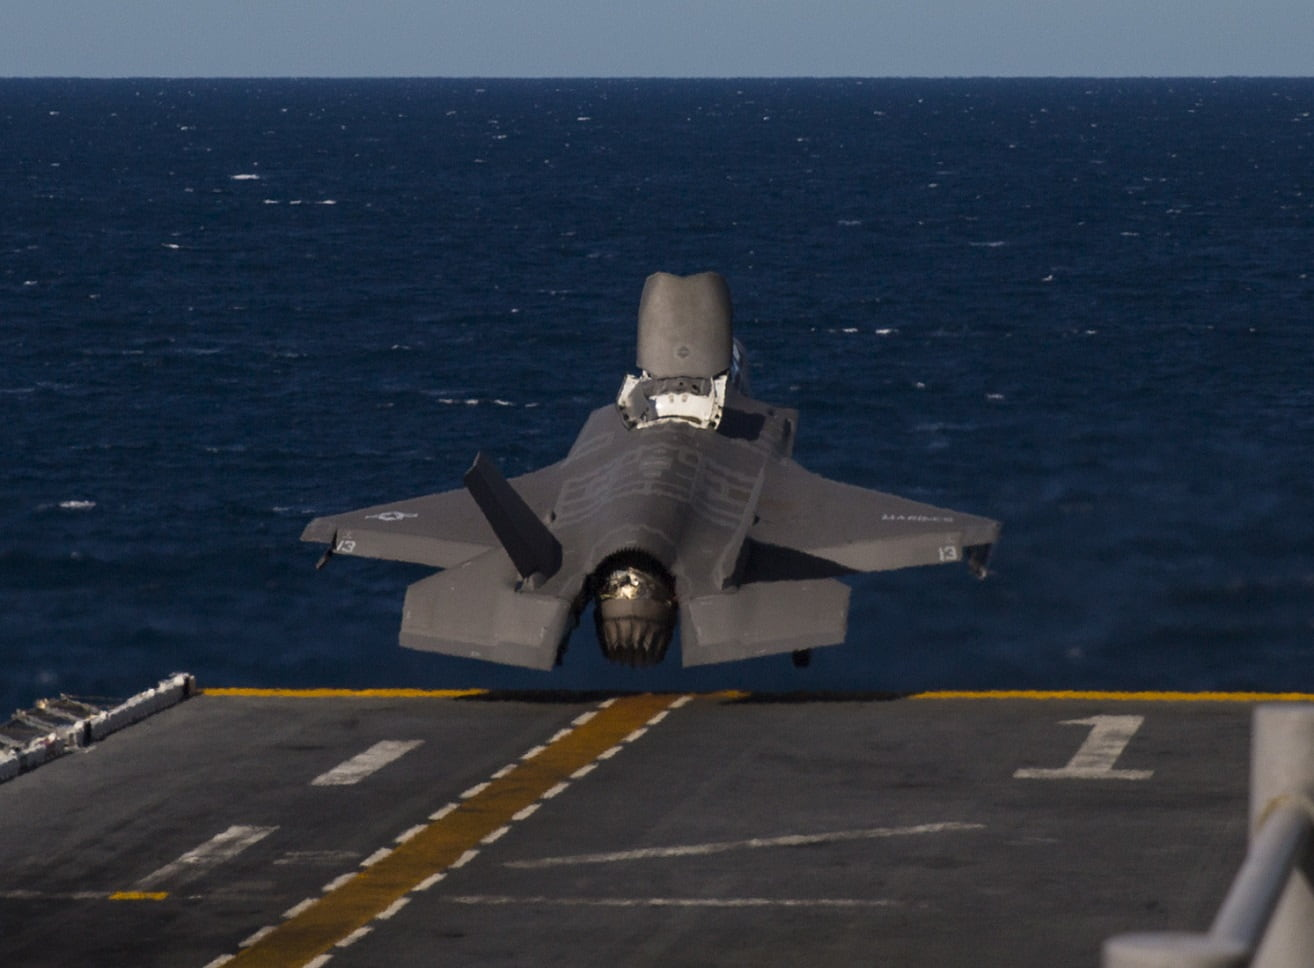 U S  Navy released video of impressive F-35 launch from